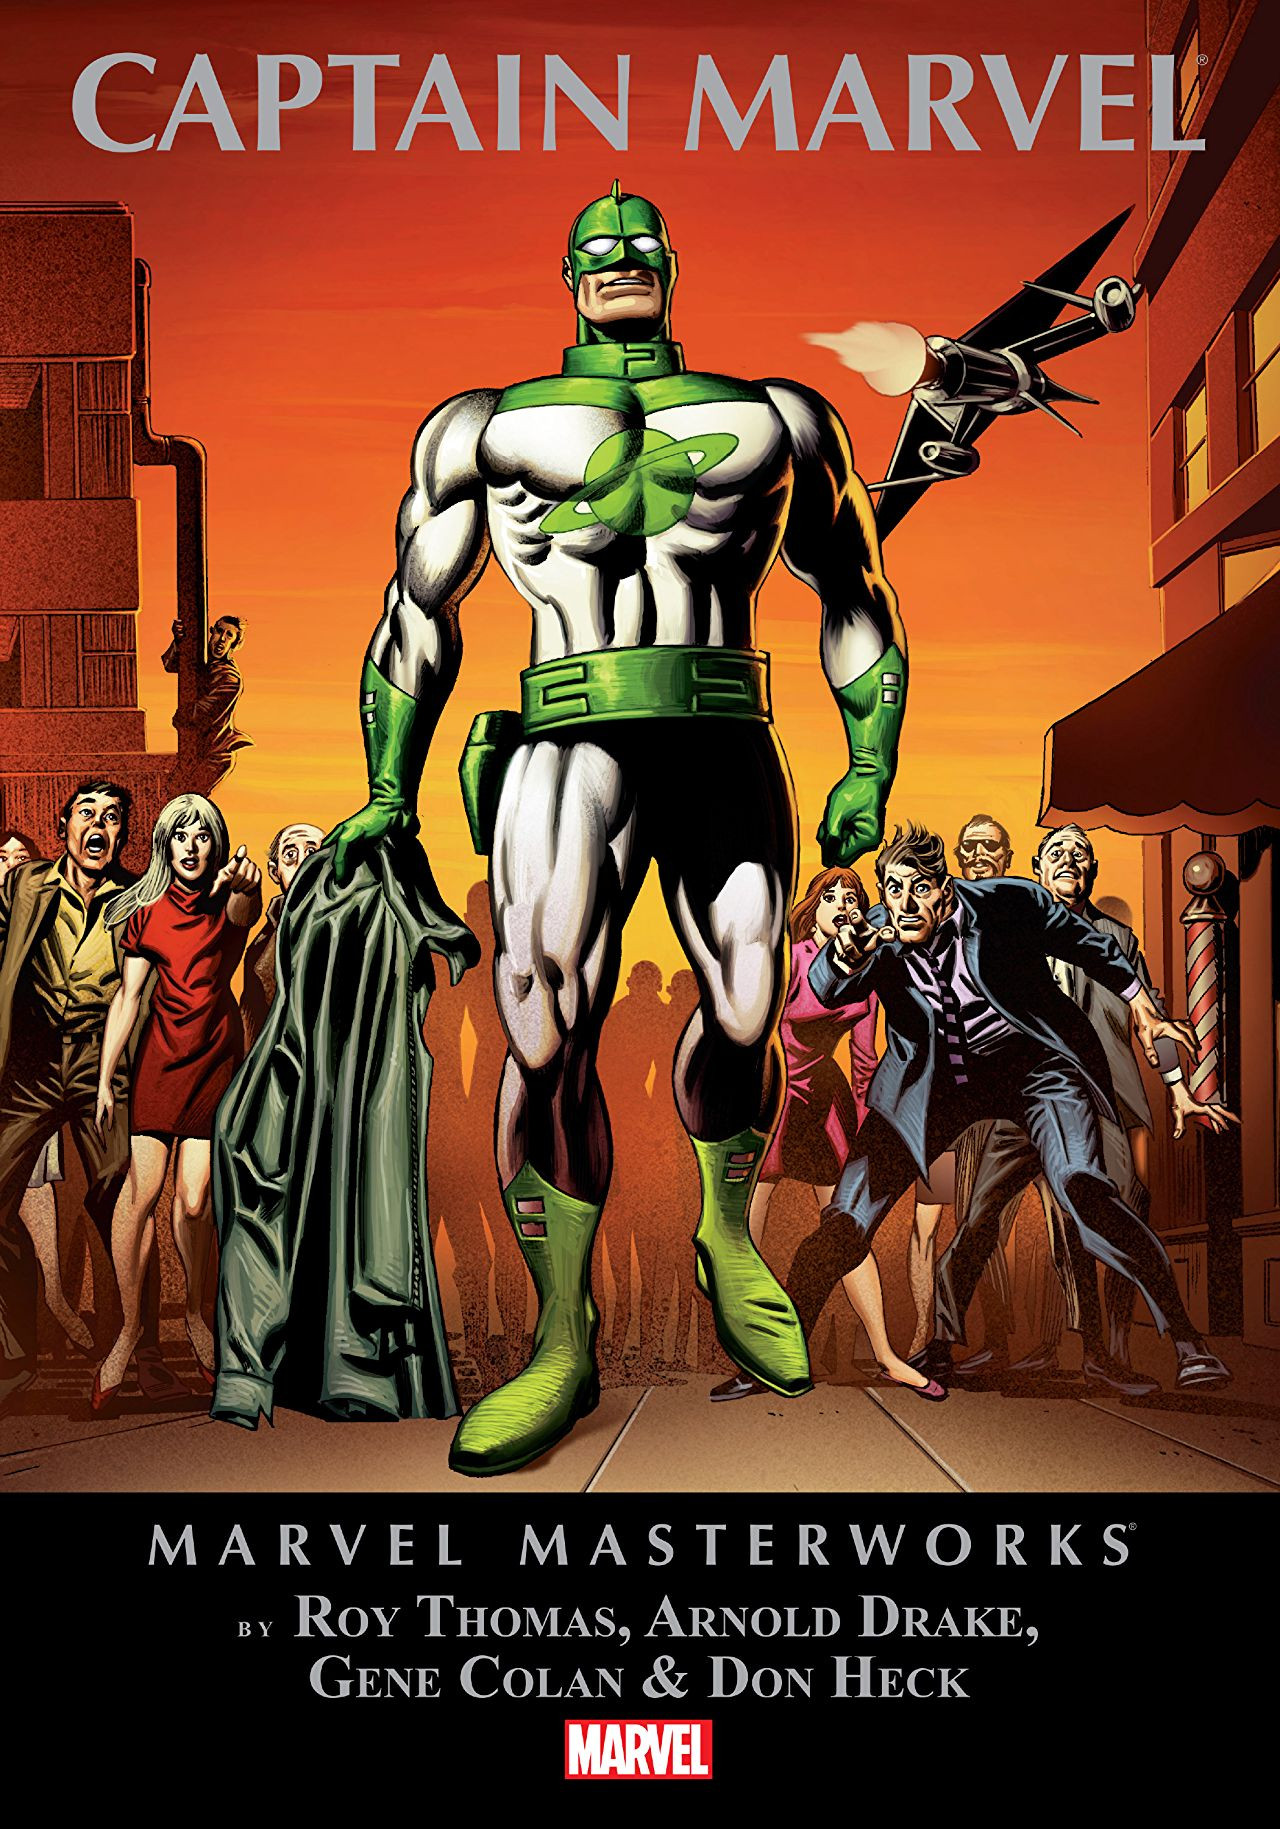 Marvel Masterworks: Captain Marvel Vol 1 1